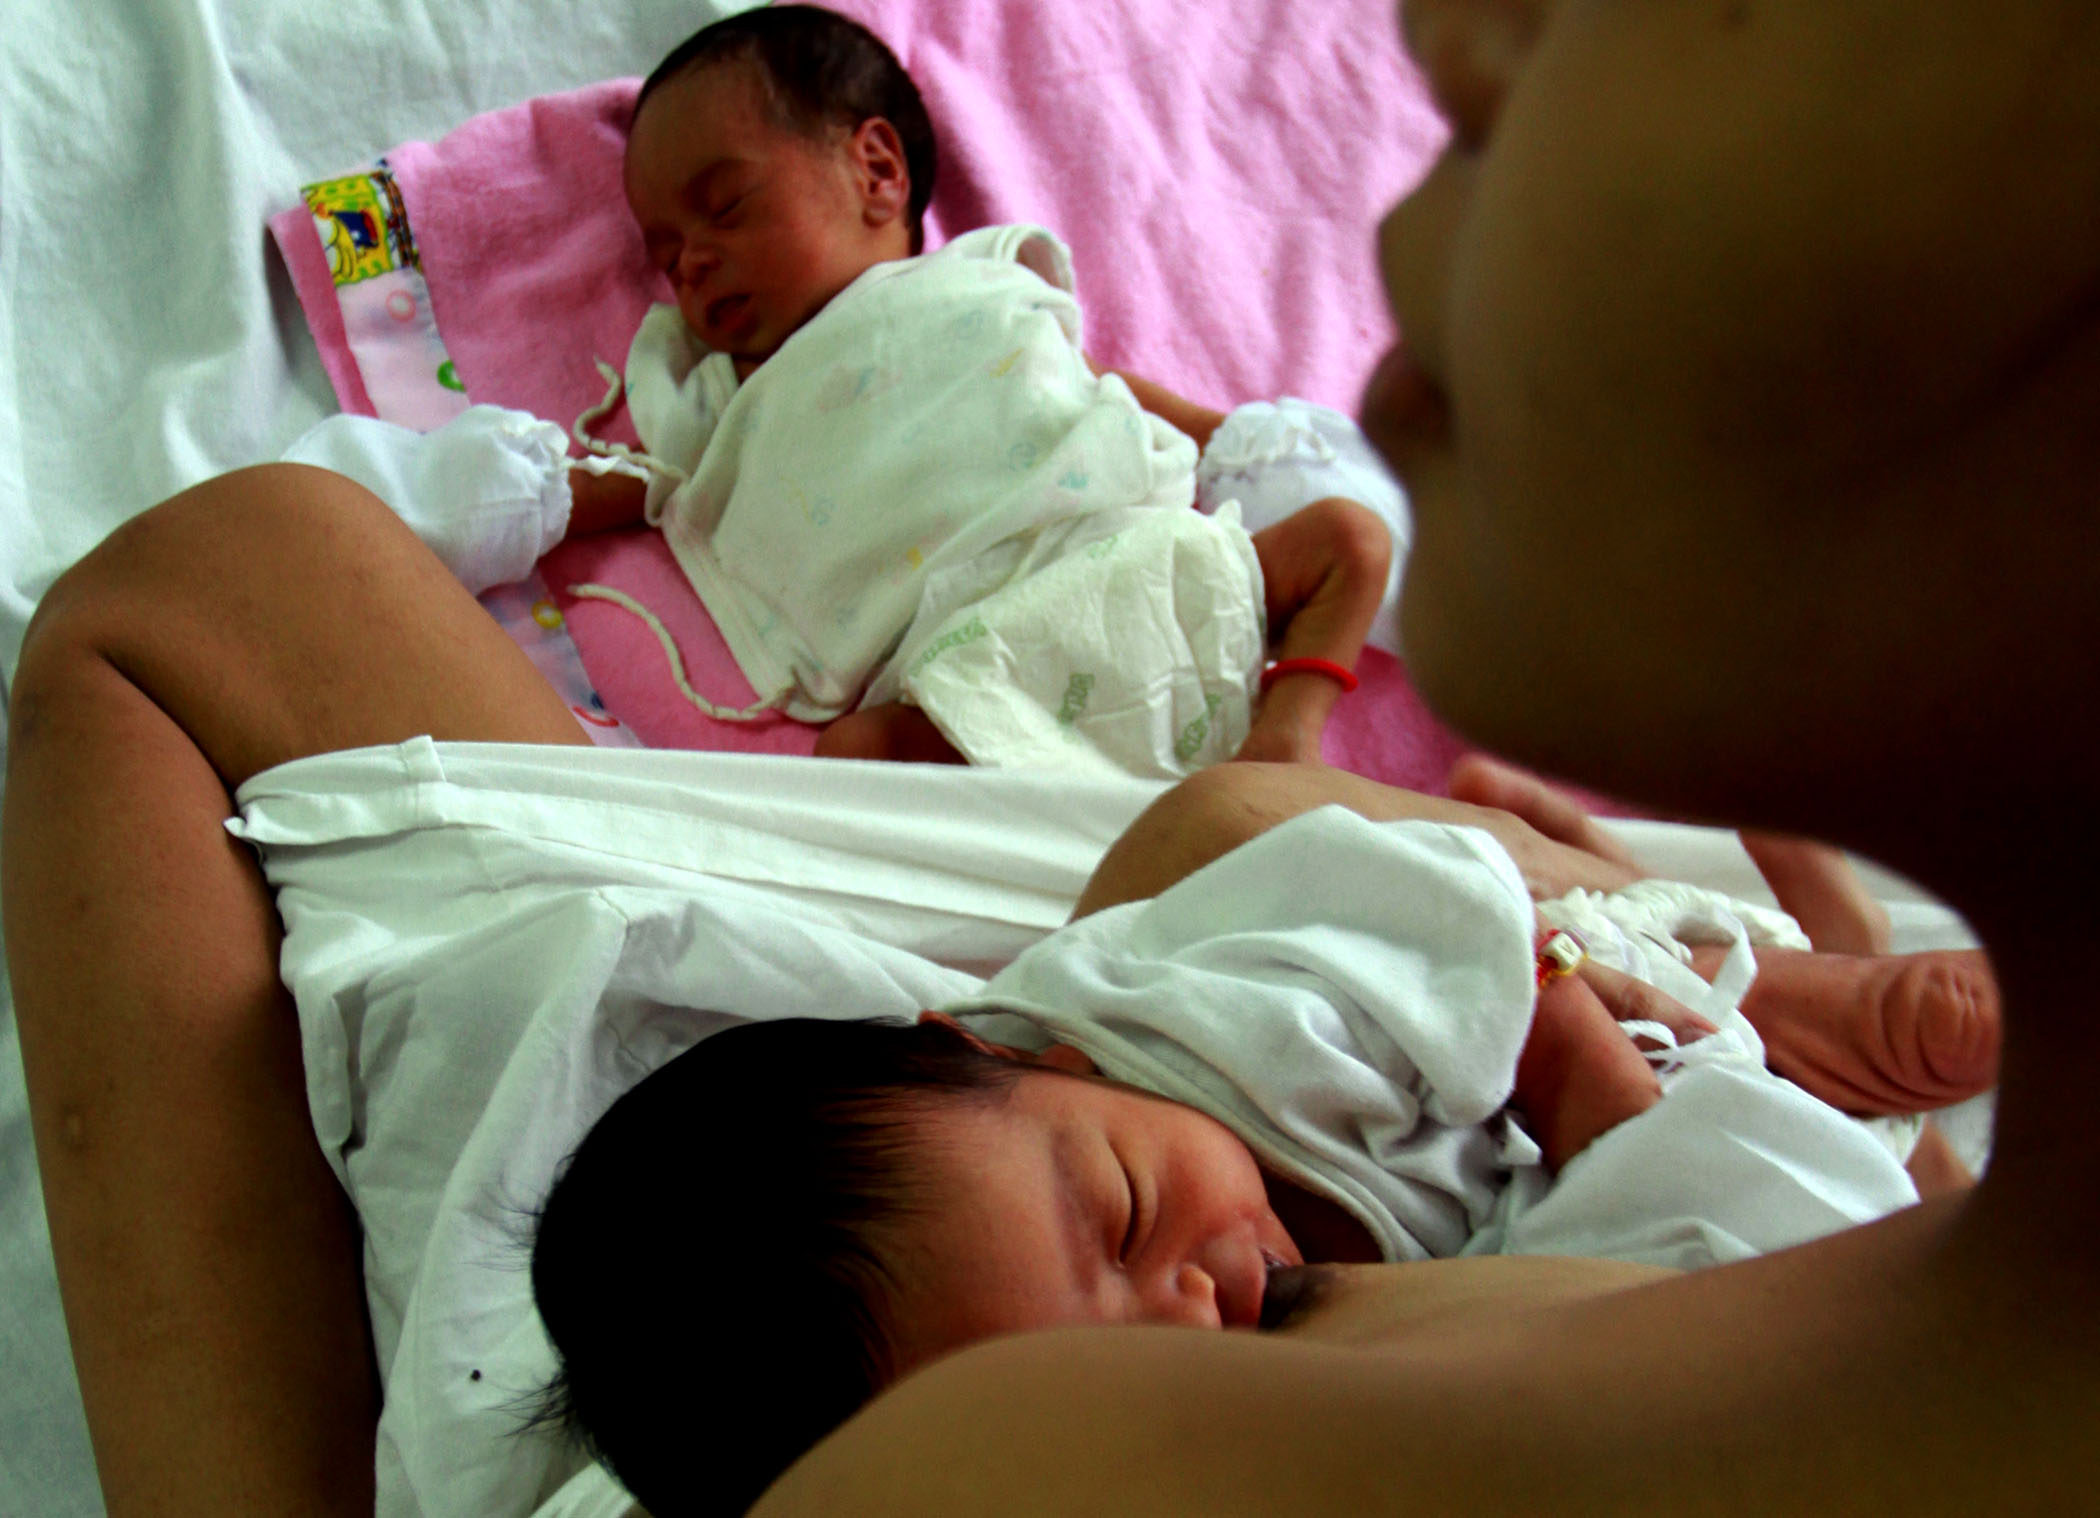 A mother breastfeeds one of her twin babies at Jose Fabella Medical hospital in Manila, Philippines